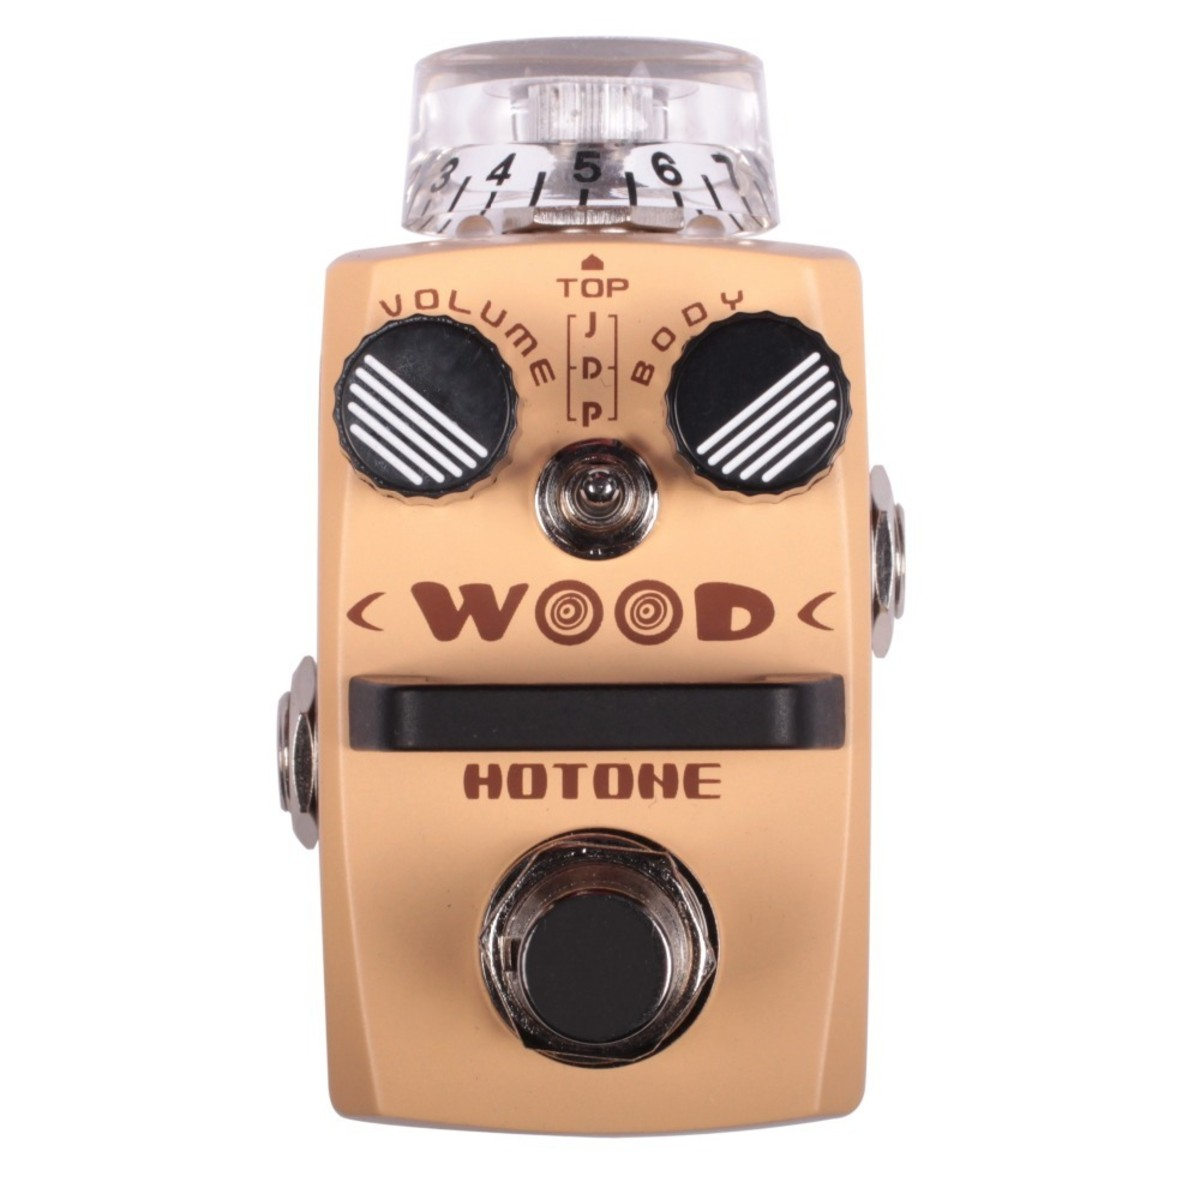 Image of Hotone WOOD Acoustic Guitar Simulator Pedal